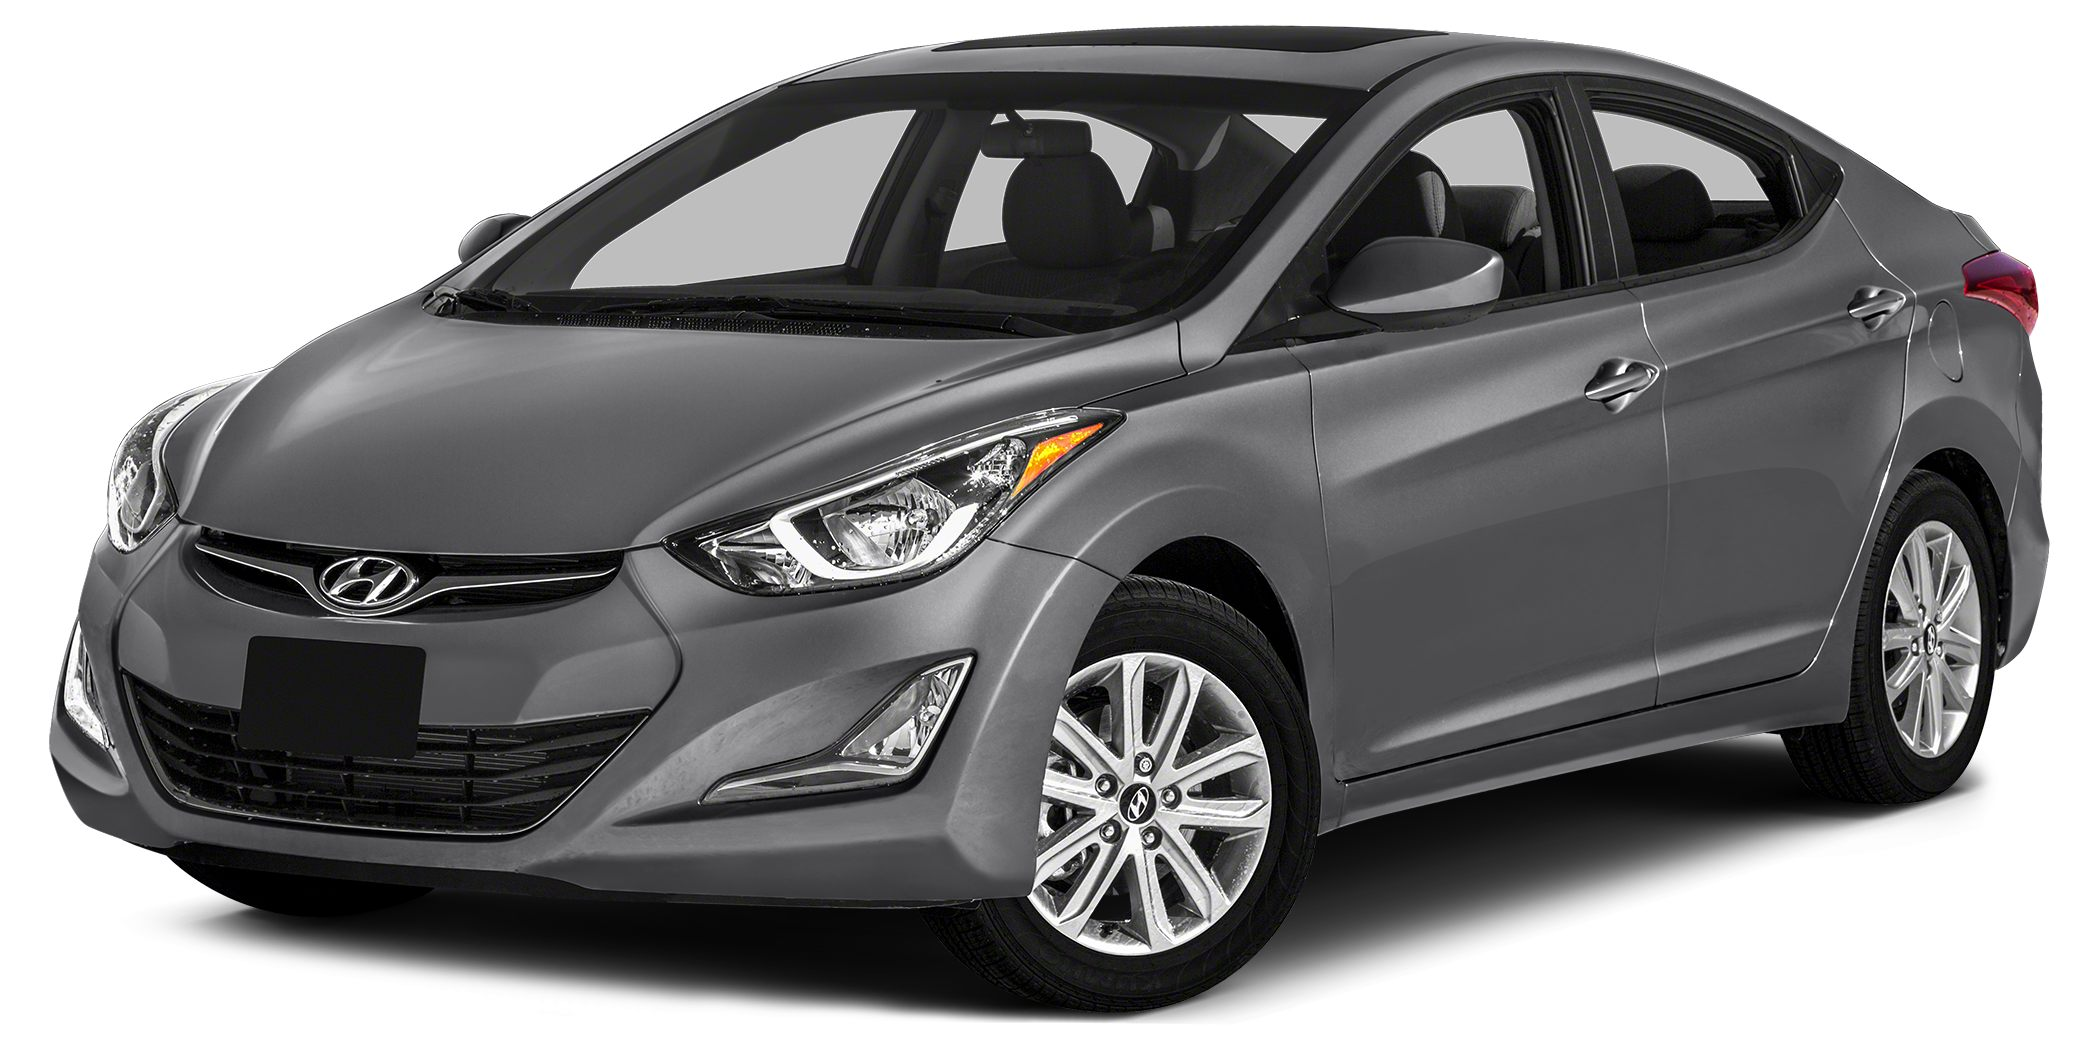 2014 Hyundai Elantra SE Visit Best Auto Group online at bronxbestautocom to see more pictures of